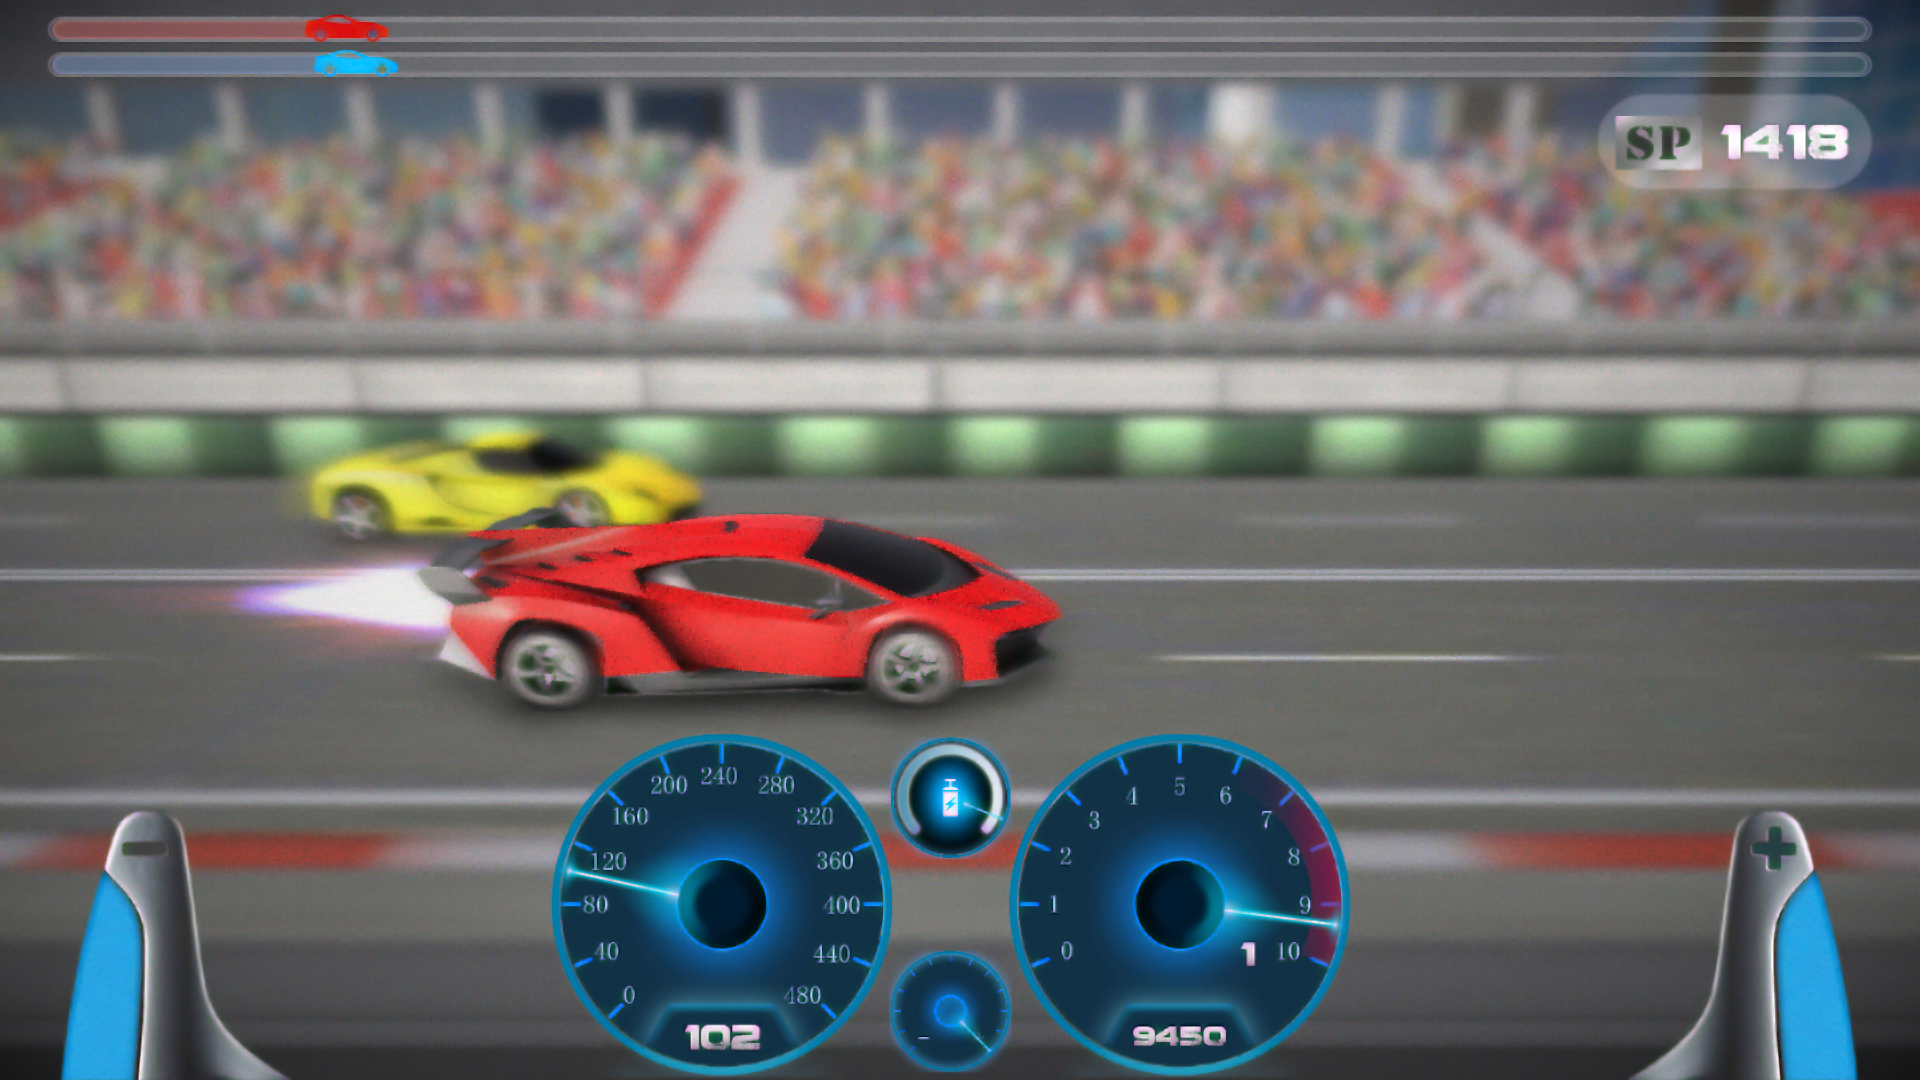 Drag racing - Top speed supercar